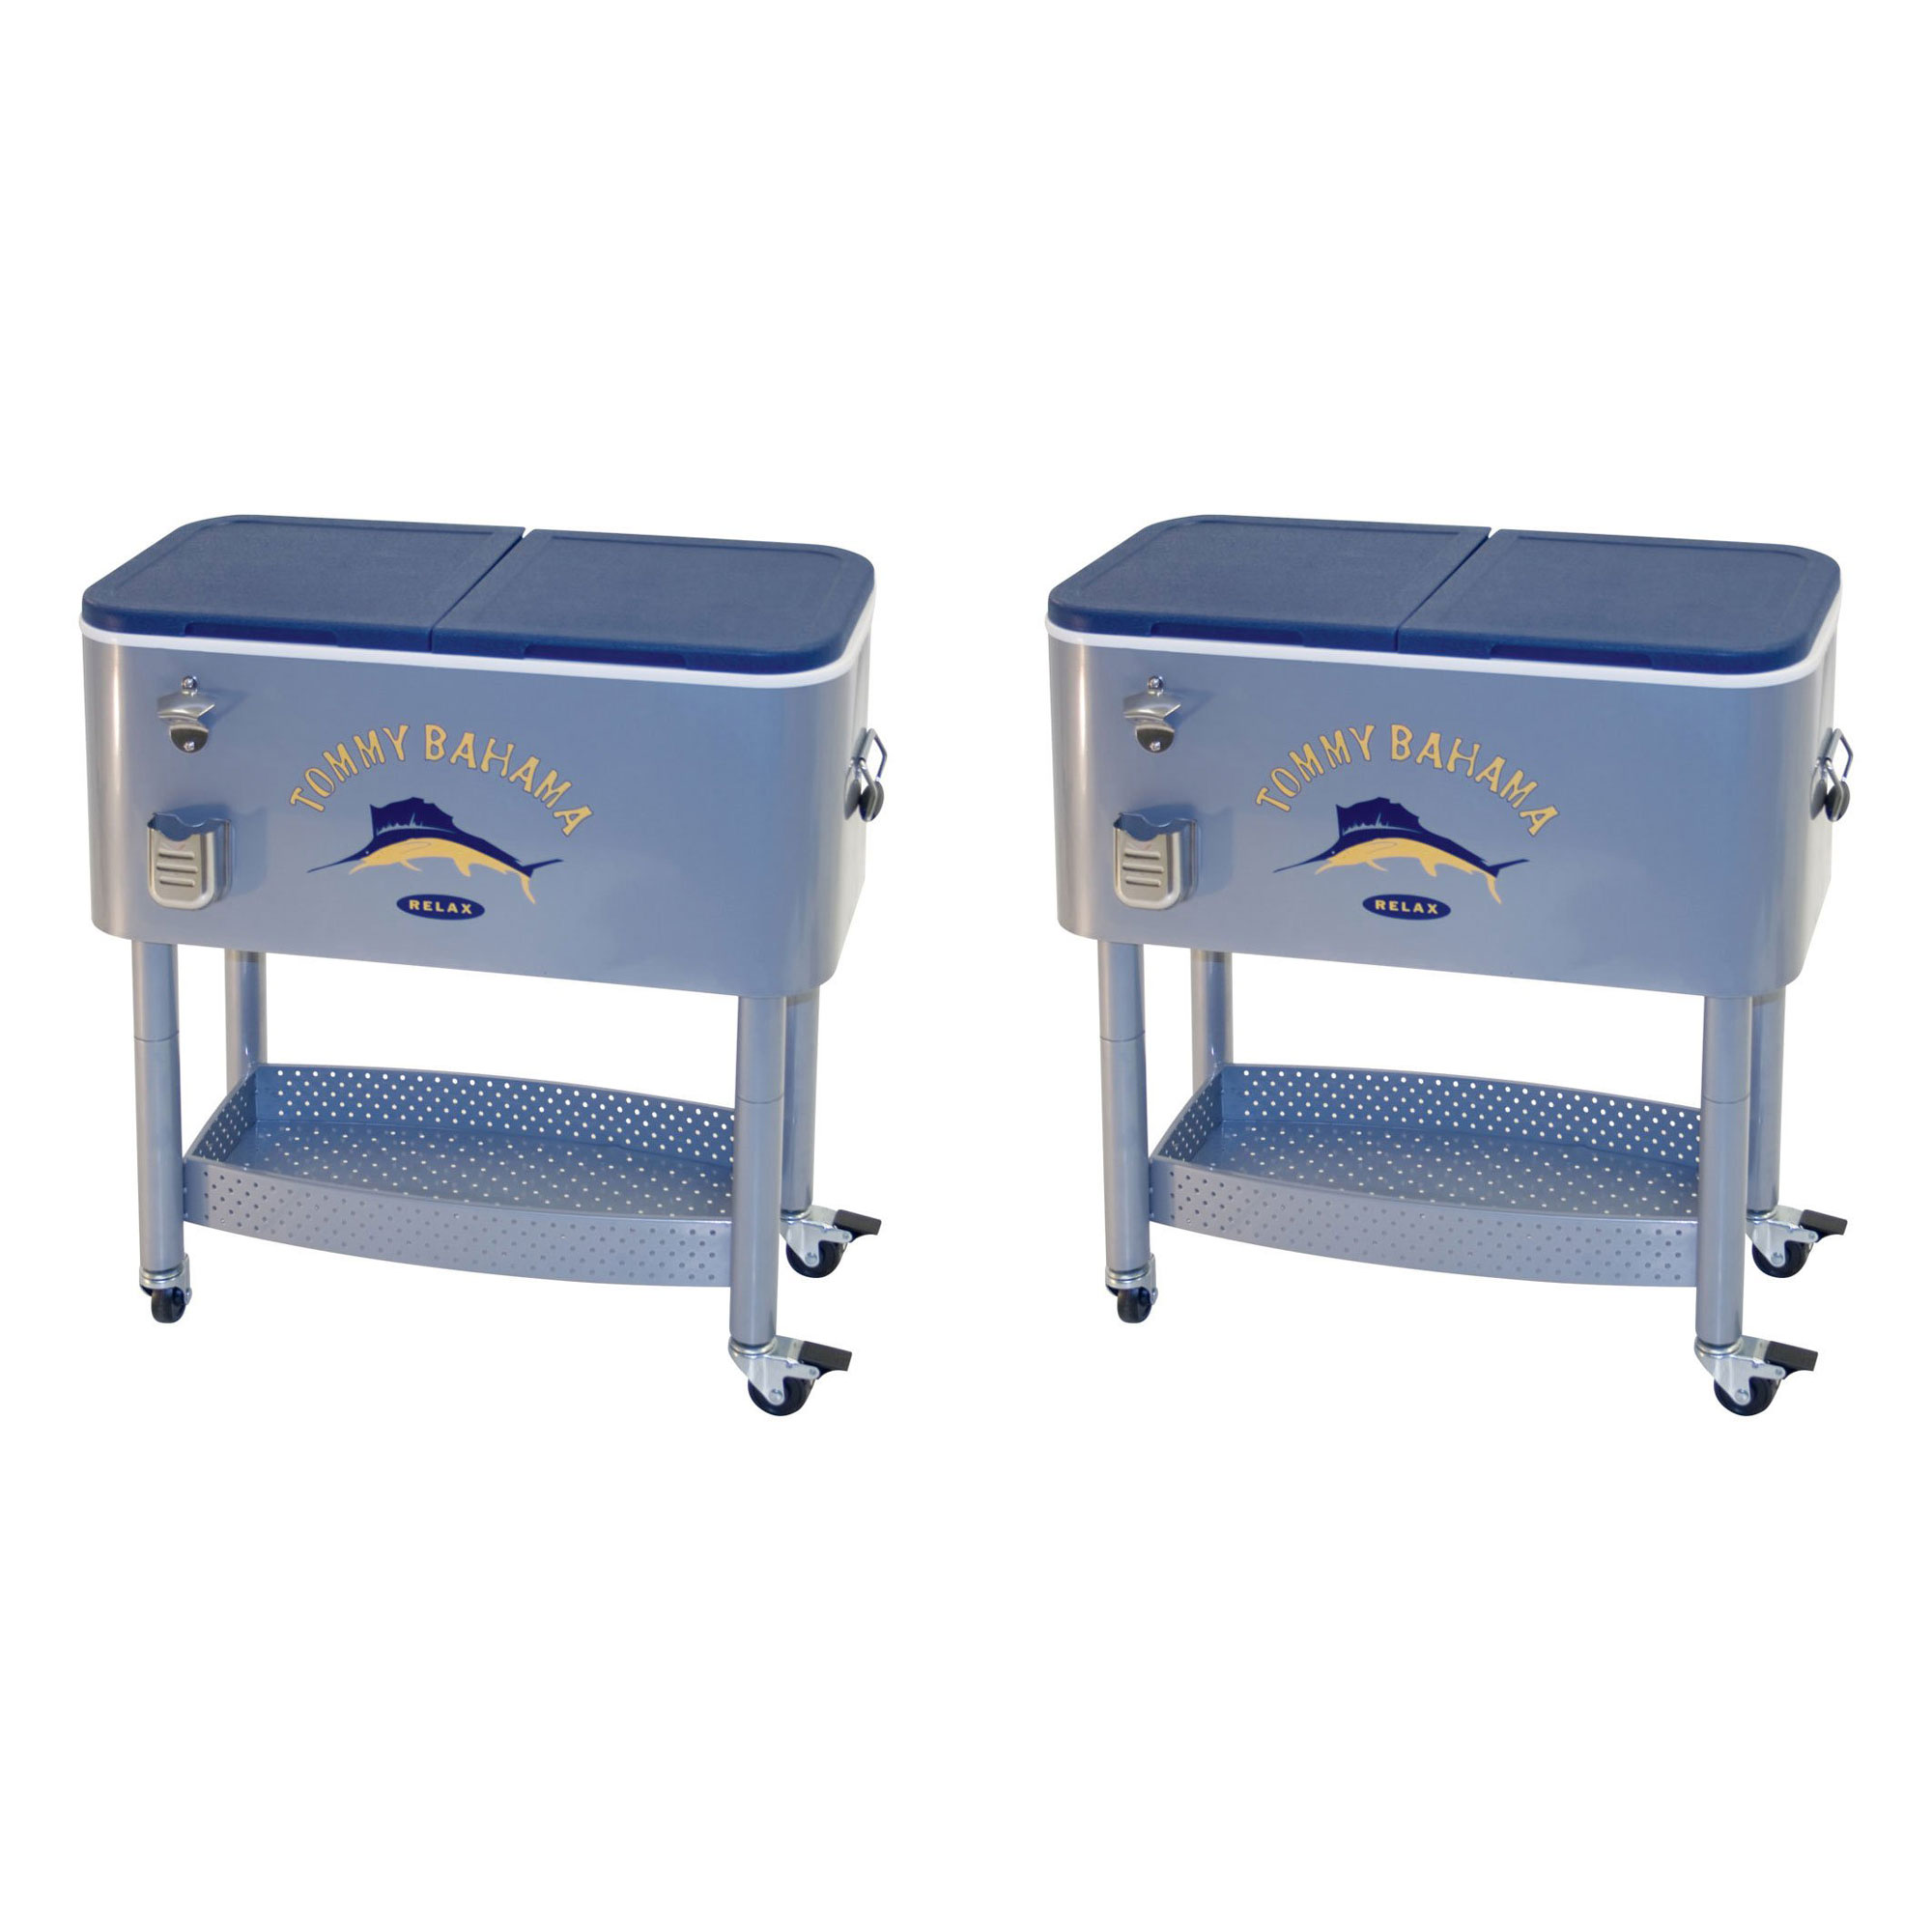 Tommy Bahama The Entertainer 77 Qt Rolling Portable Patio Party Cooler (2 Pack)